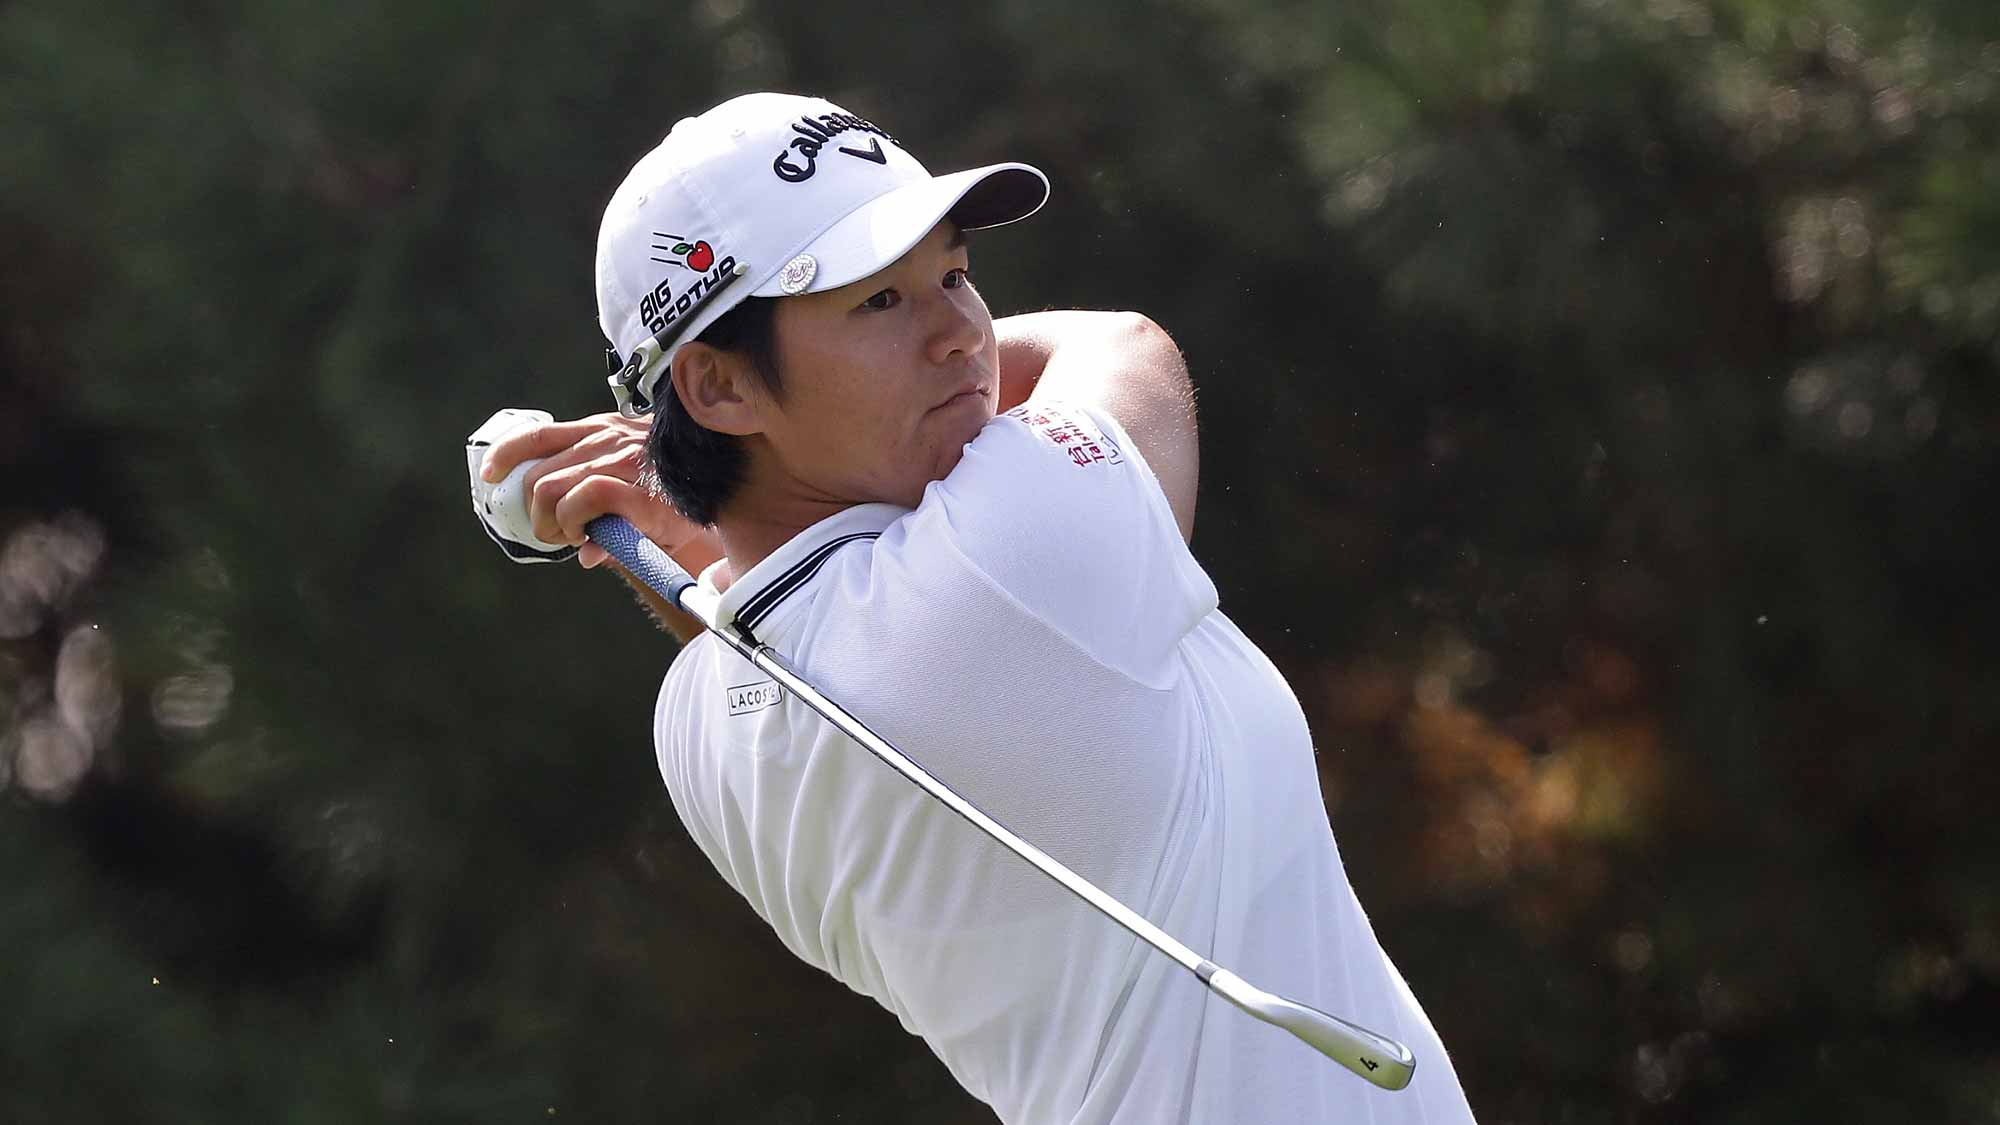 Yani Tseng of Taiwan plays a tee shot on the 4th hole during round three of the LPGA KEB Hana Bank